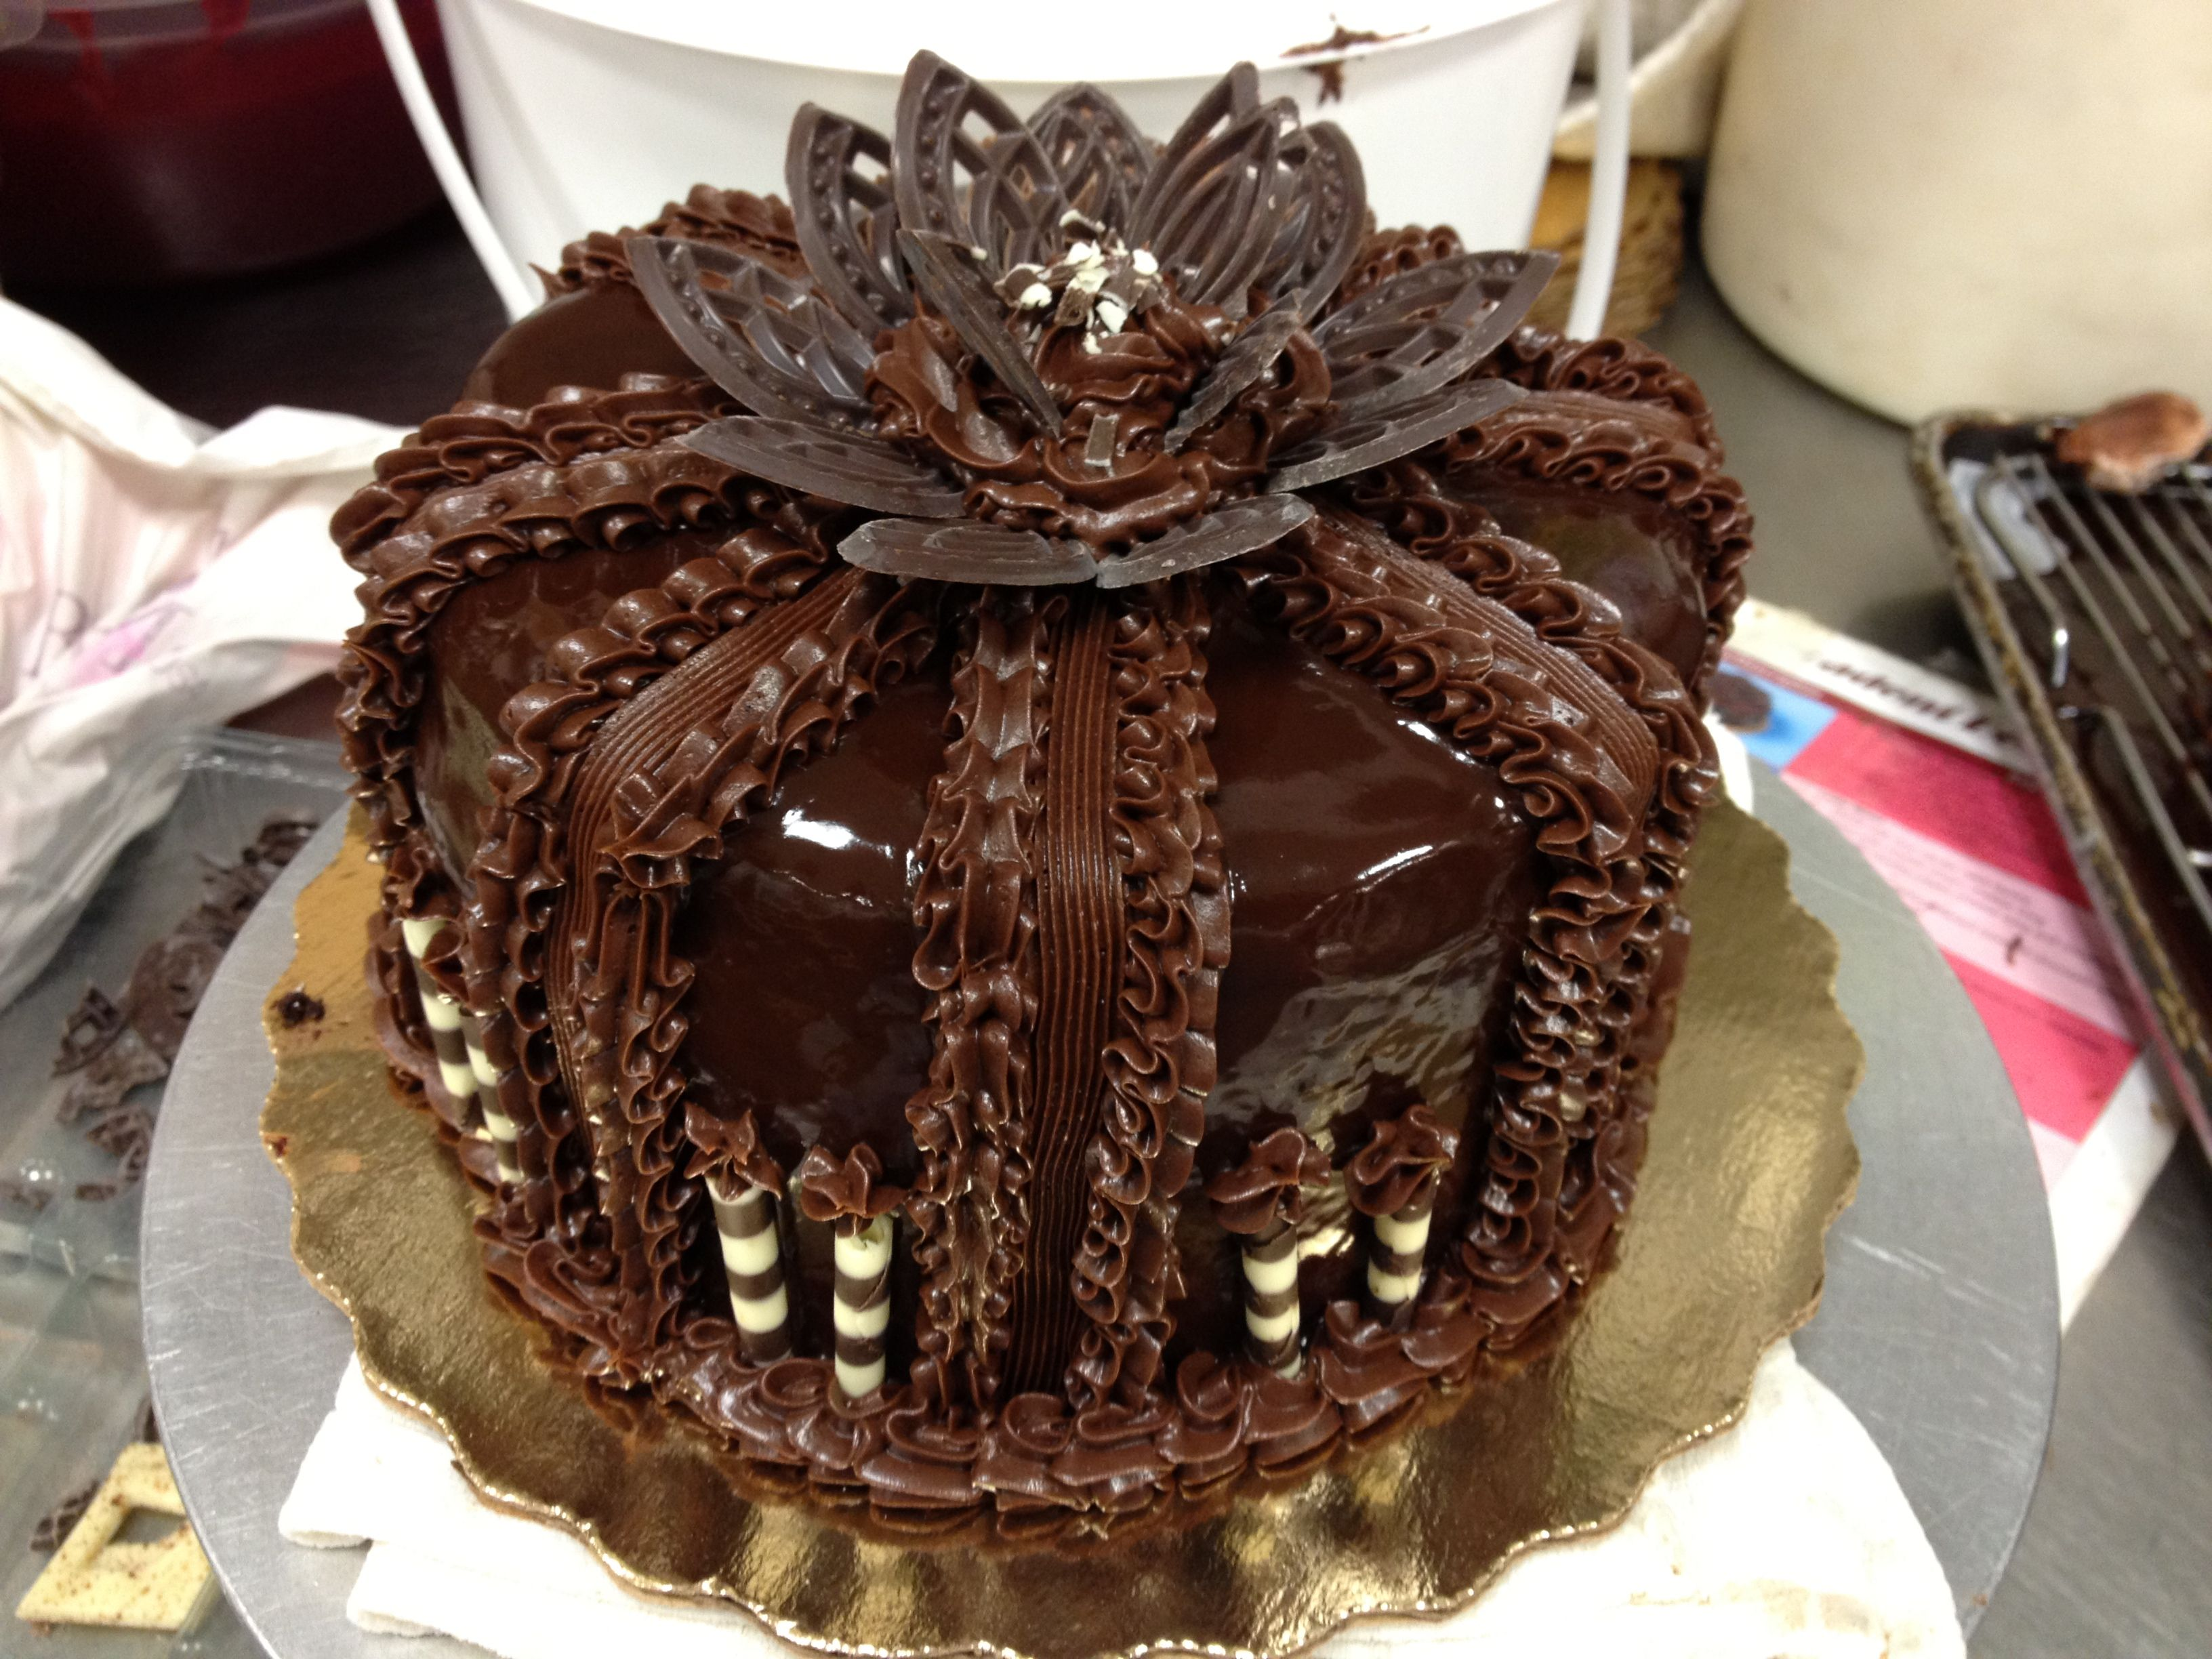 Chocolate ganache supreme that publix makes this is my